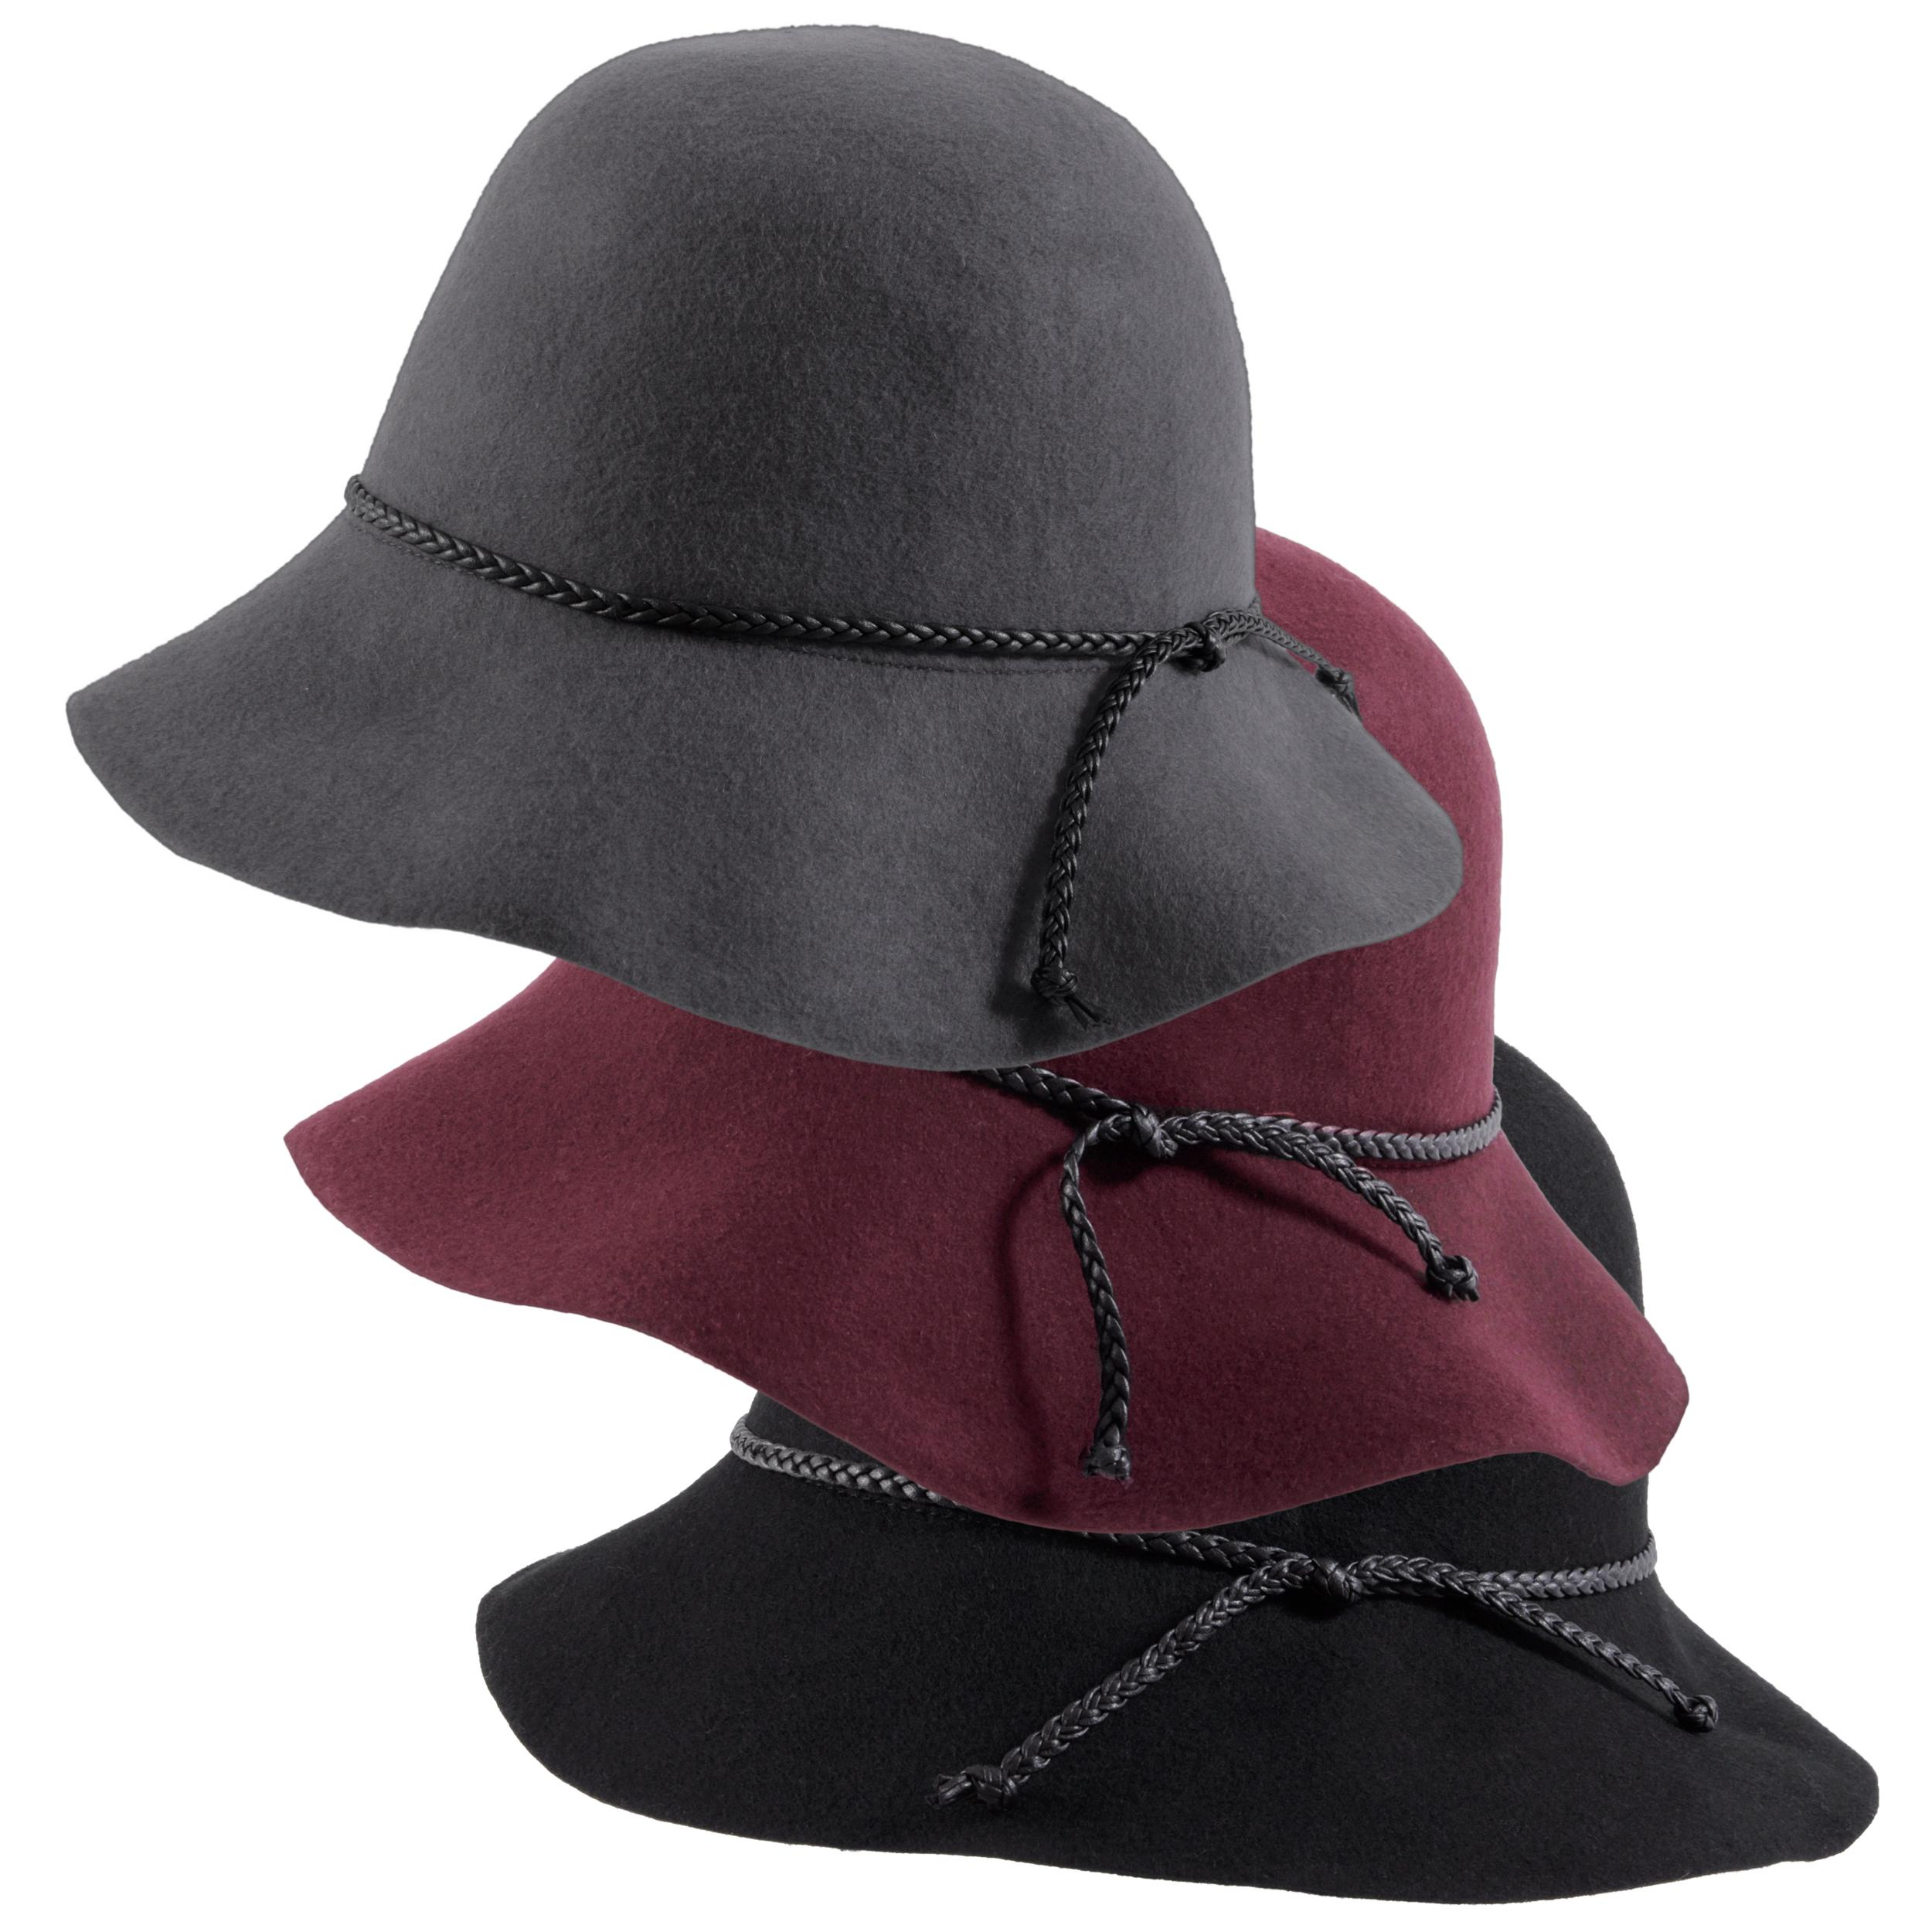 Fedora hat for men